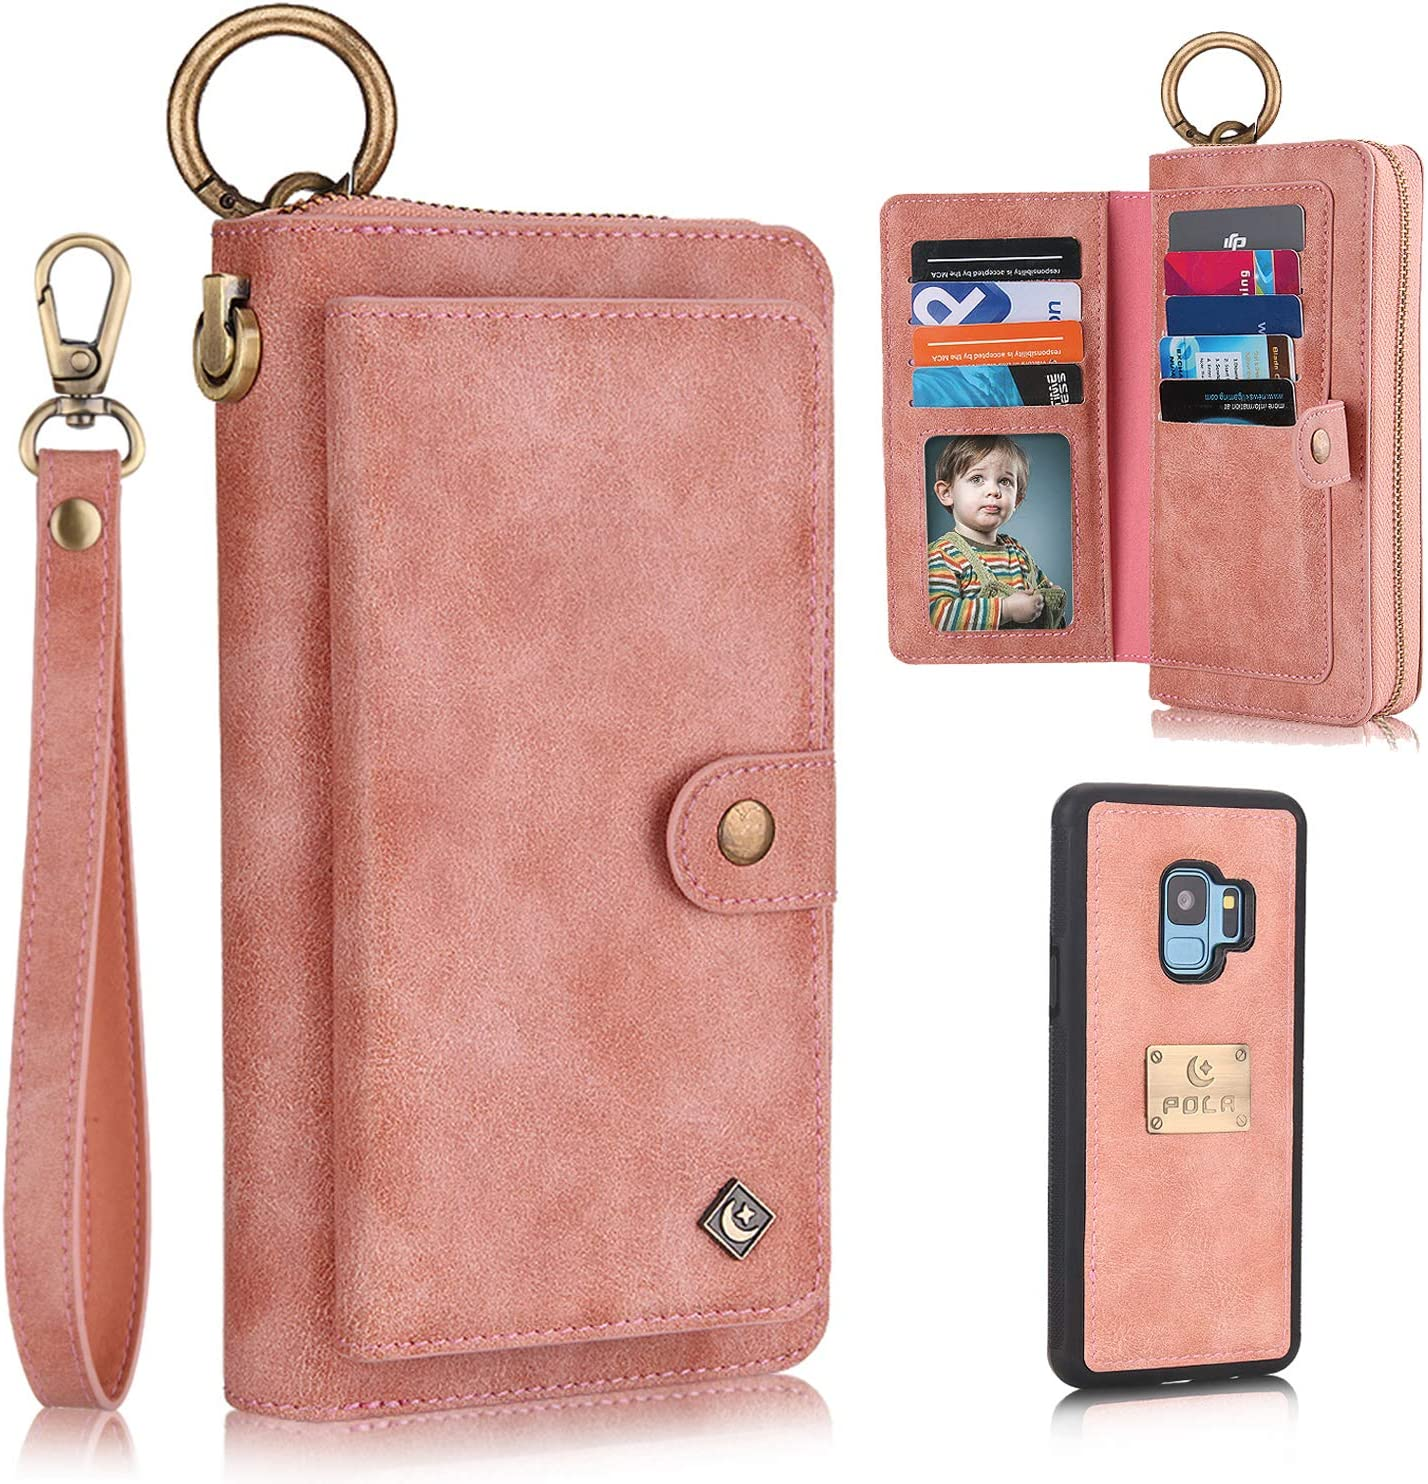 Galaxy S9 Case, XRPow [2 in 1] Magnetic Detachable S9 Wallet Case [Vegan Leather] Zipper Wallet Folio Flip Card Solt [Wrist Strap] Purse Protection Back Cover for Samsung Galaxy S9 - Rose Gold